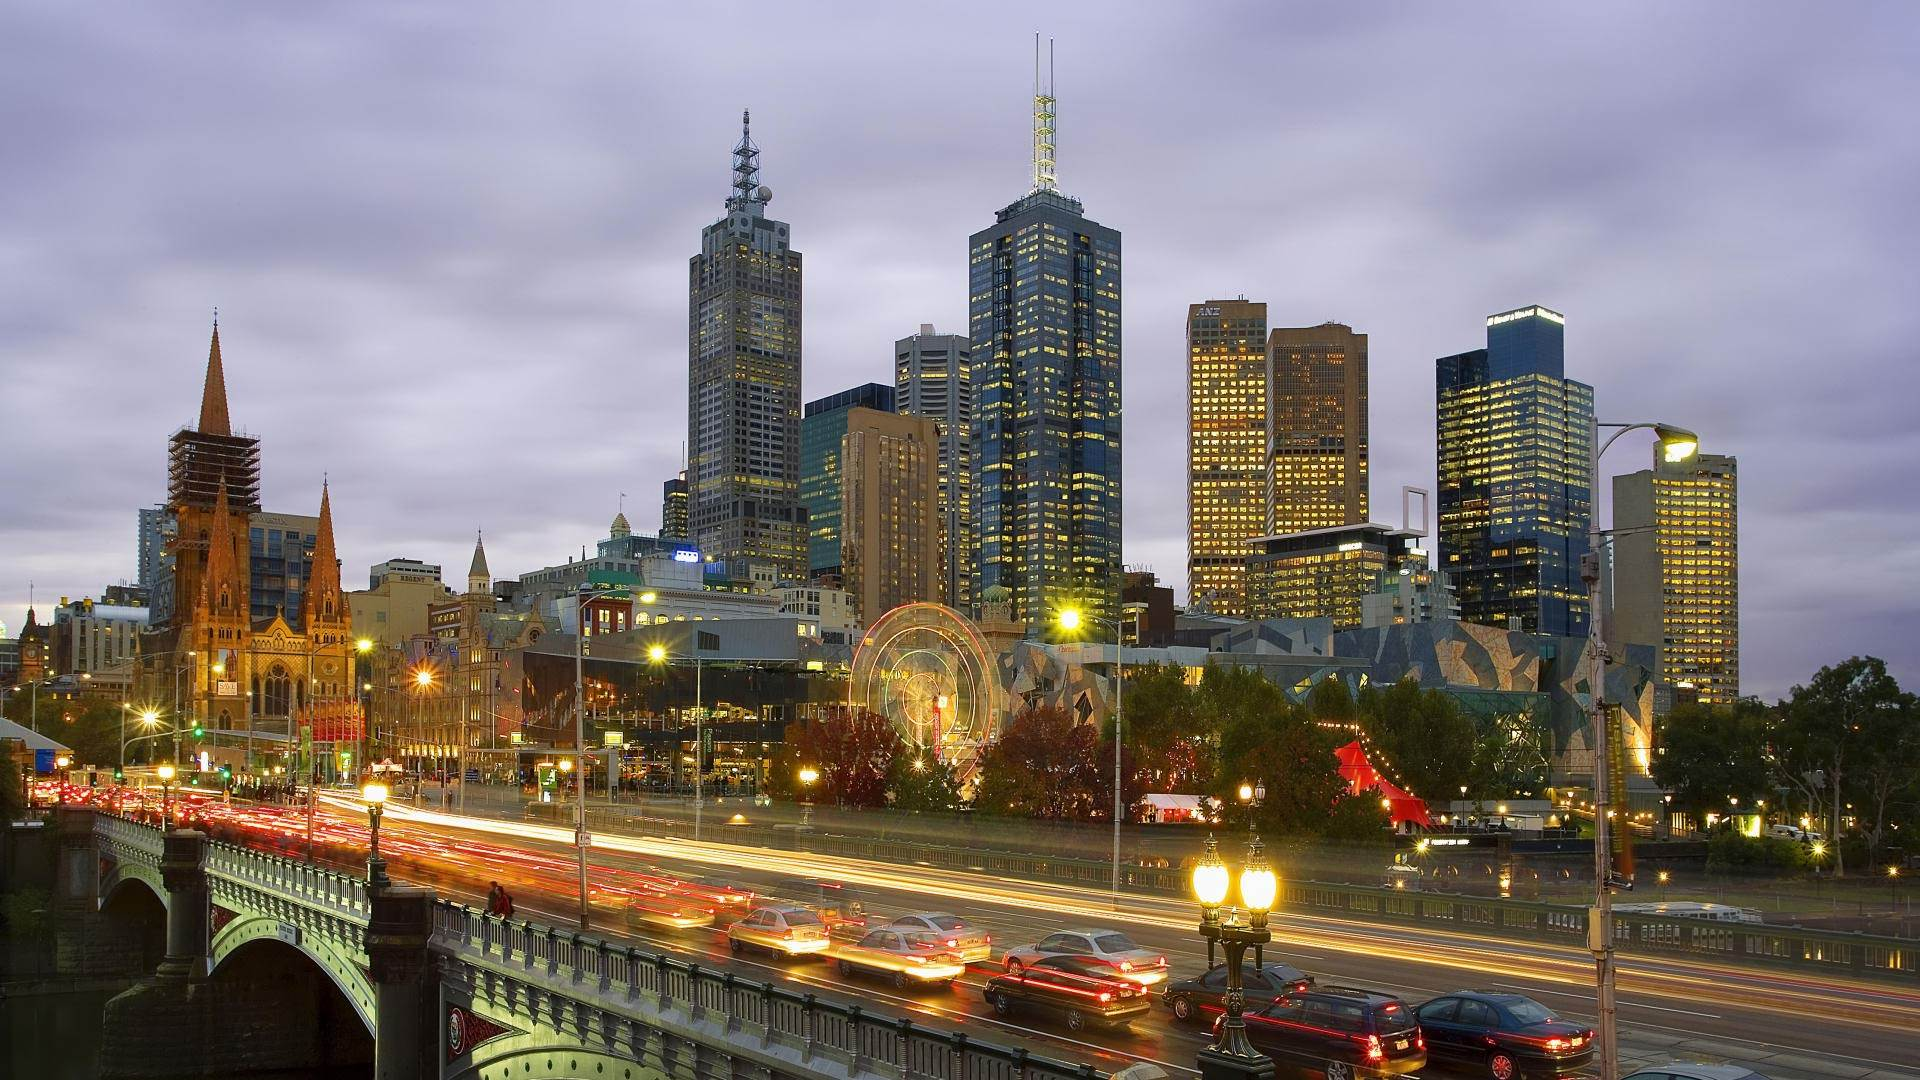 Melbourne wallpapers Apk Download latest version  com.hanna 1920x1080